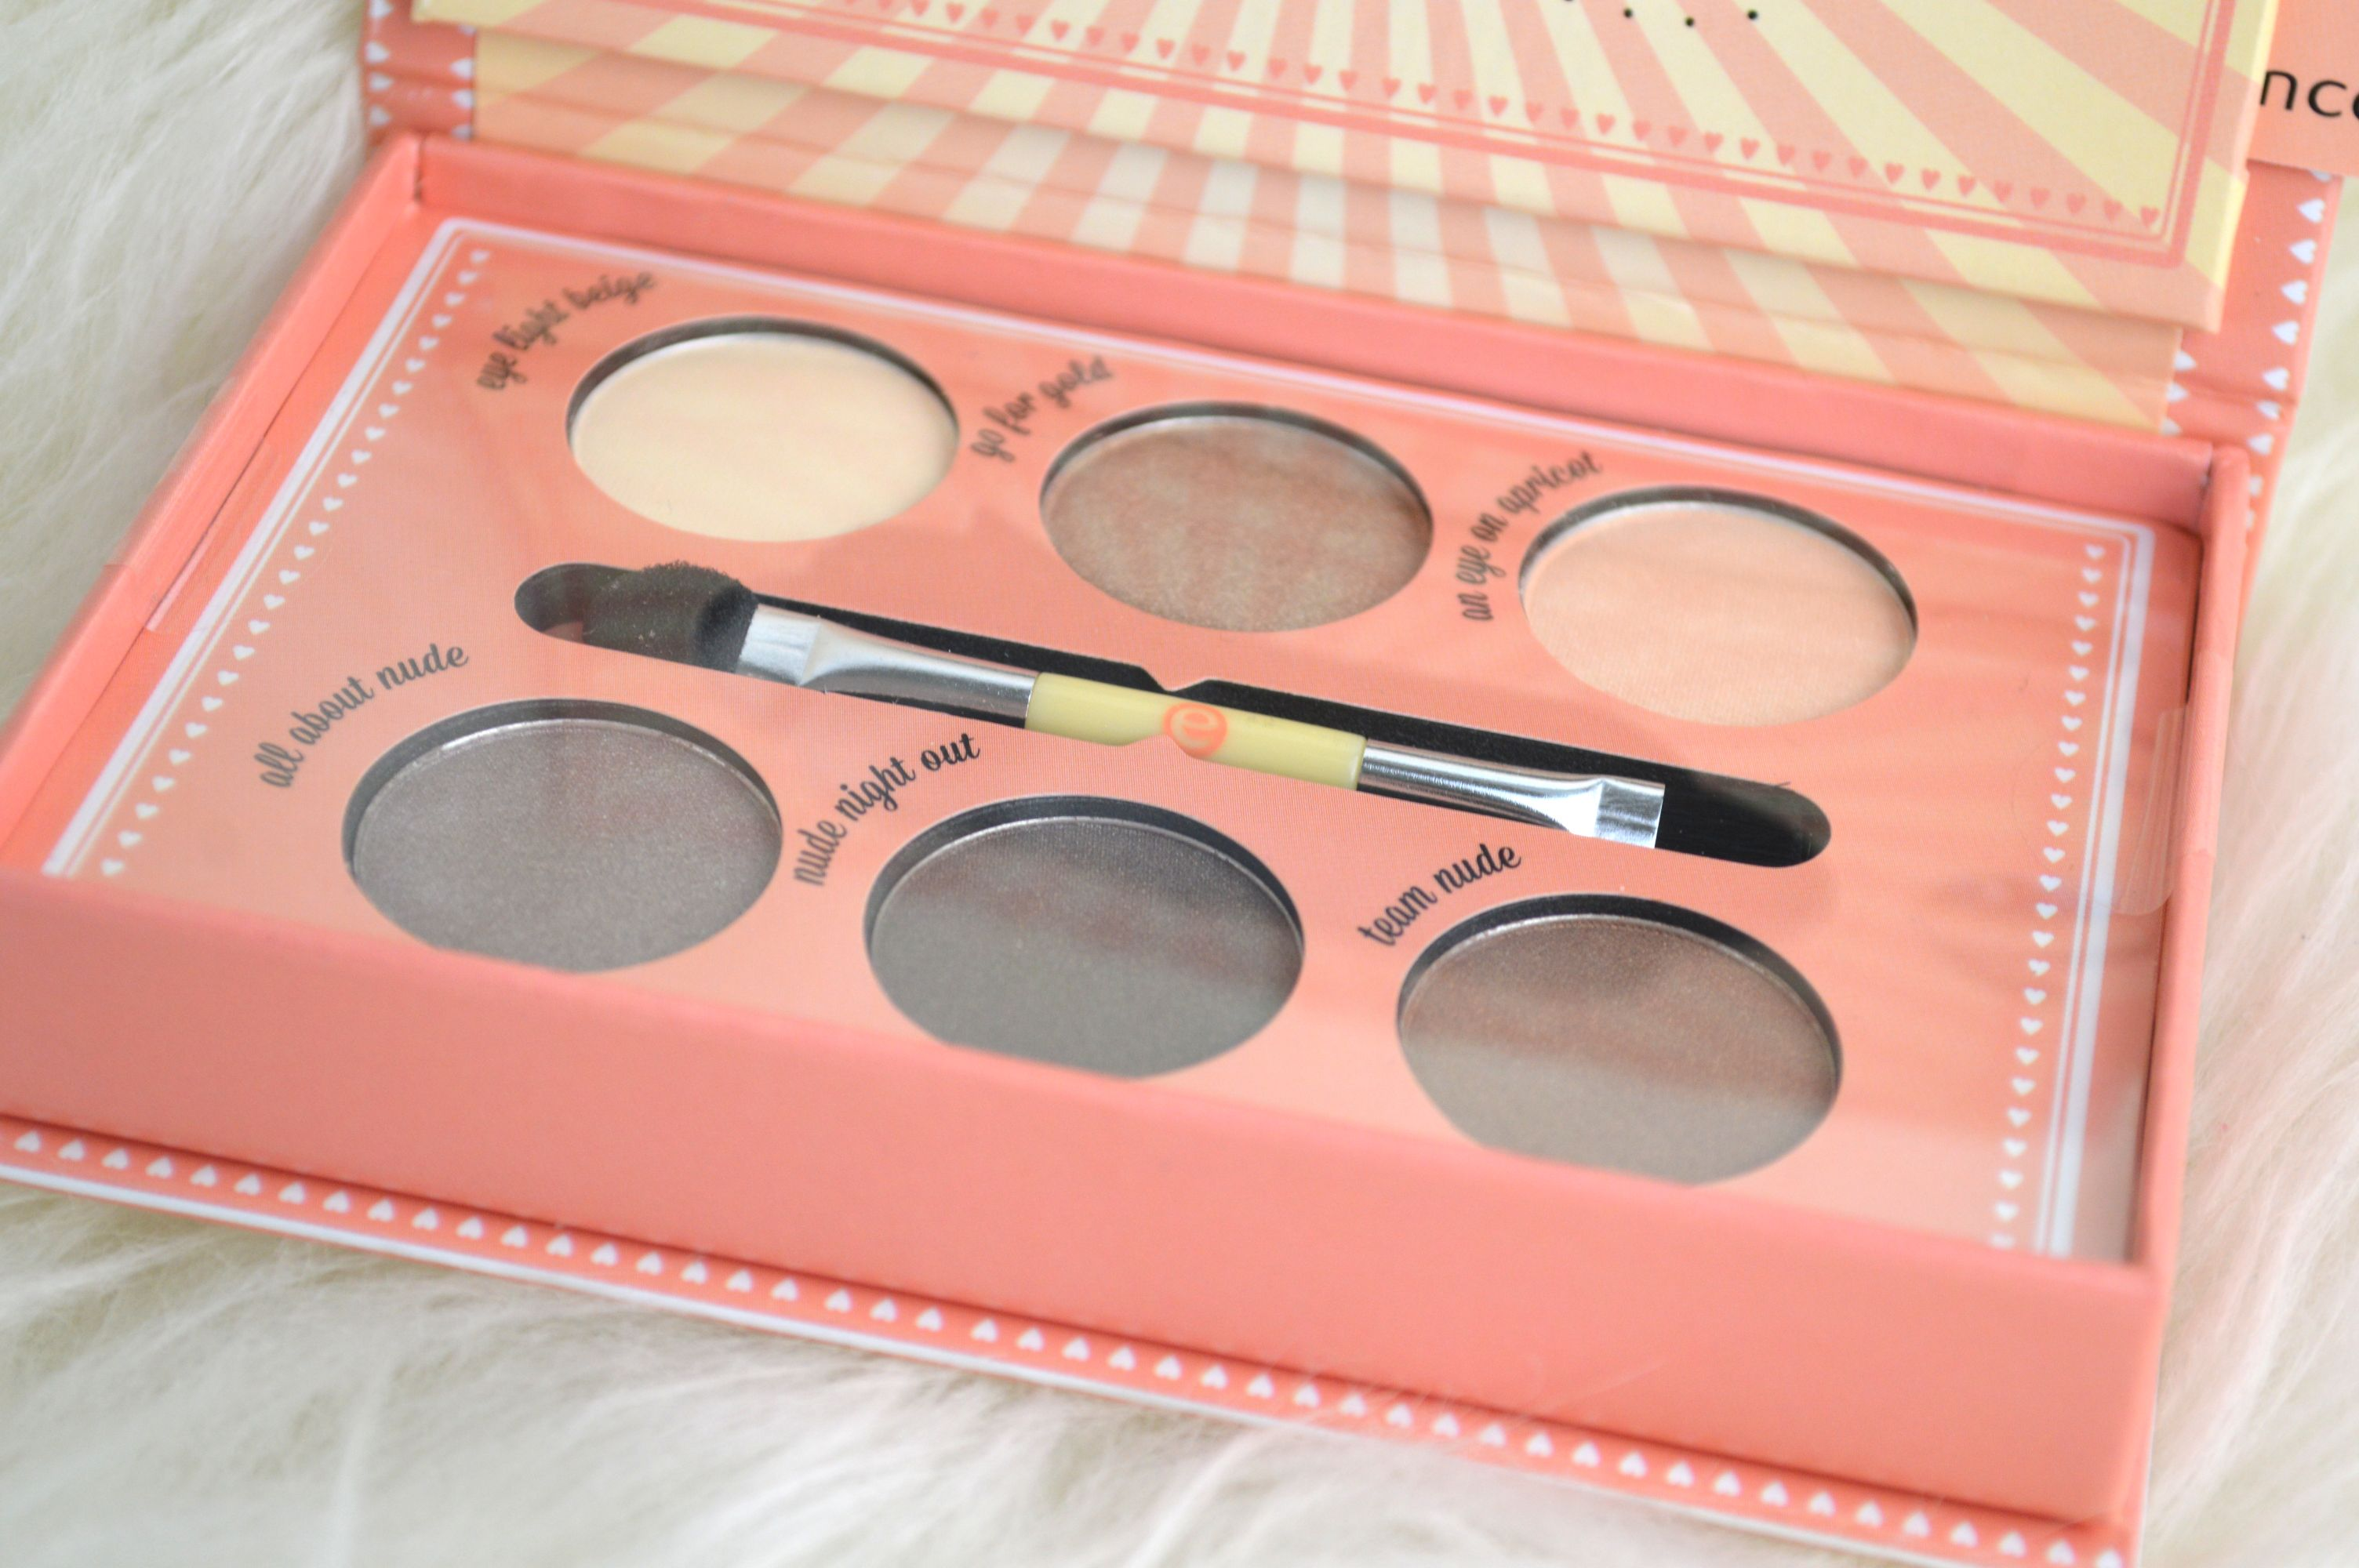 Folie_Essence_How_to_make_nude_eyes_Makeup_box